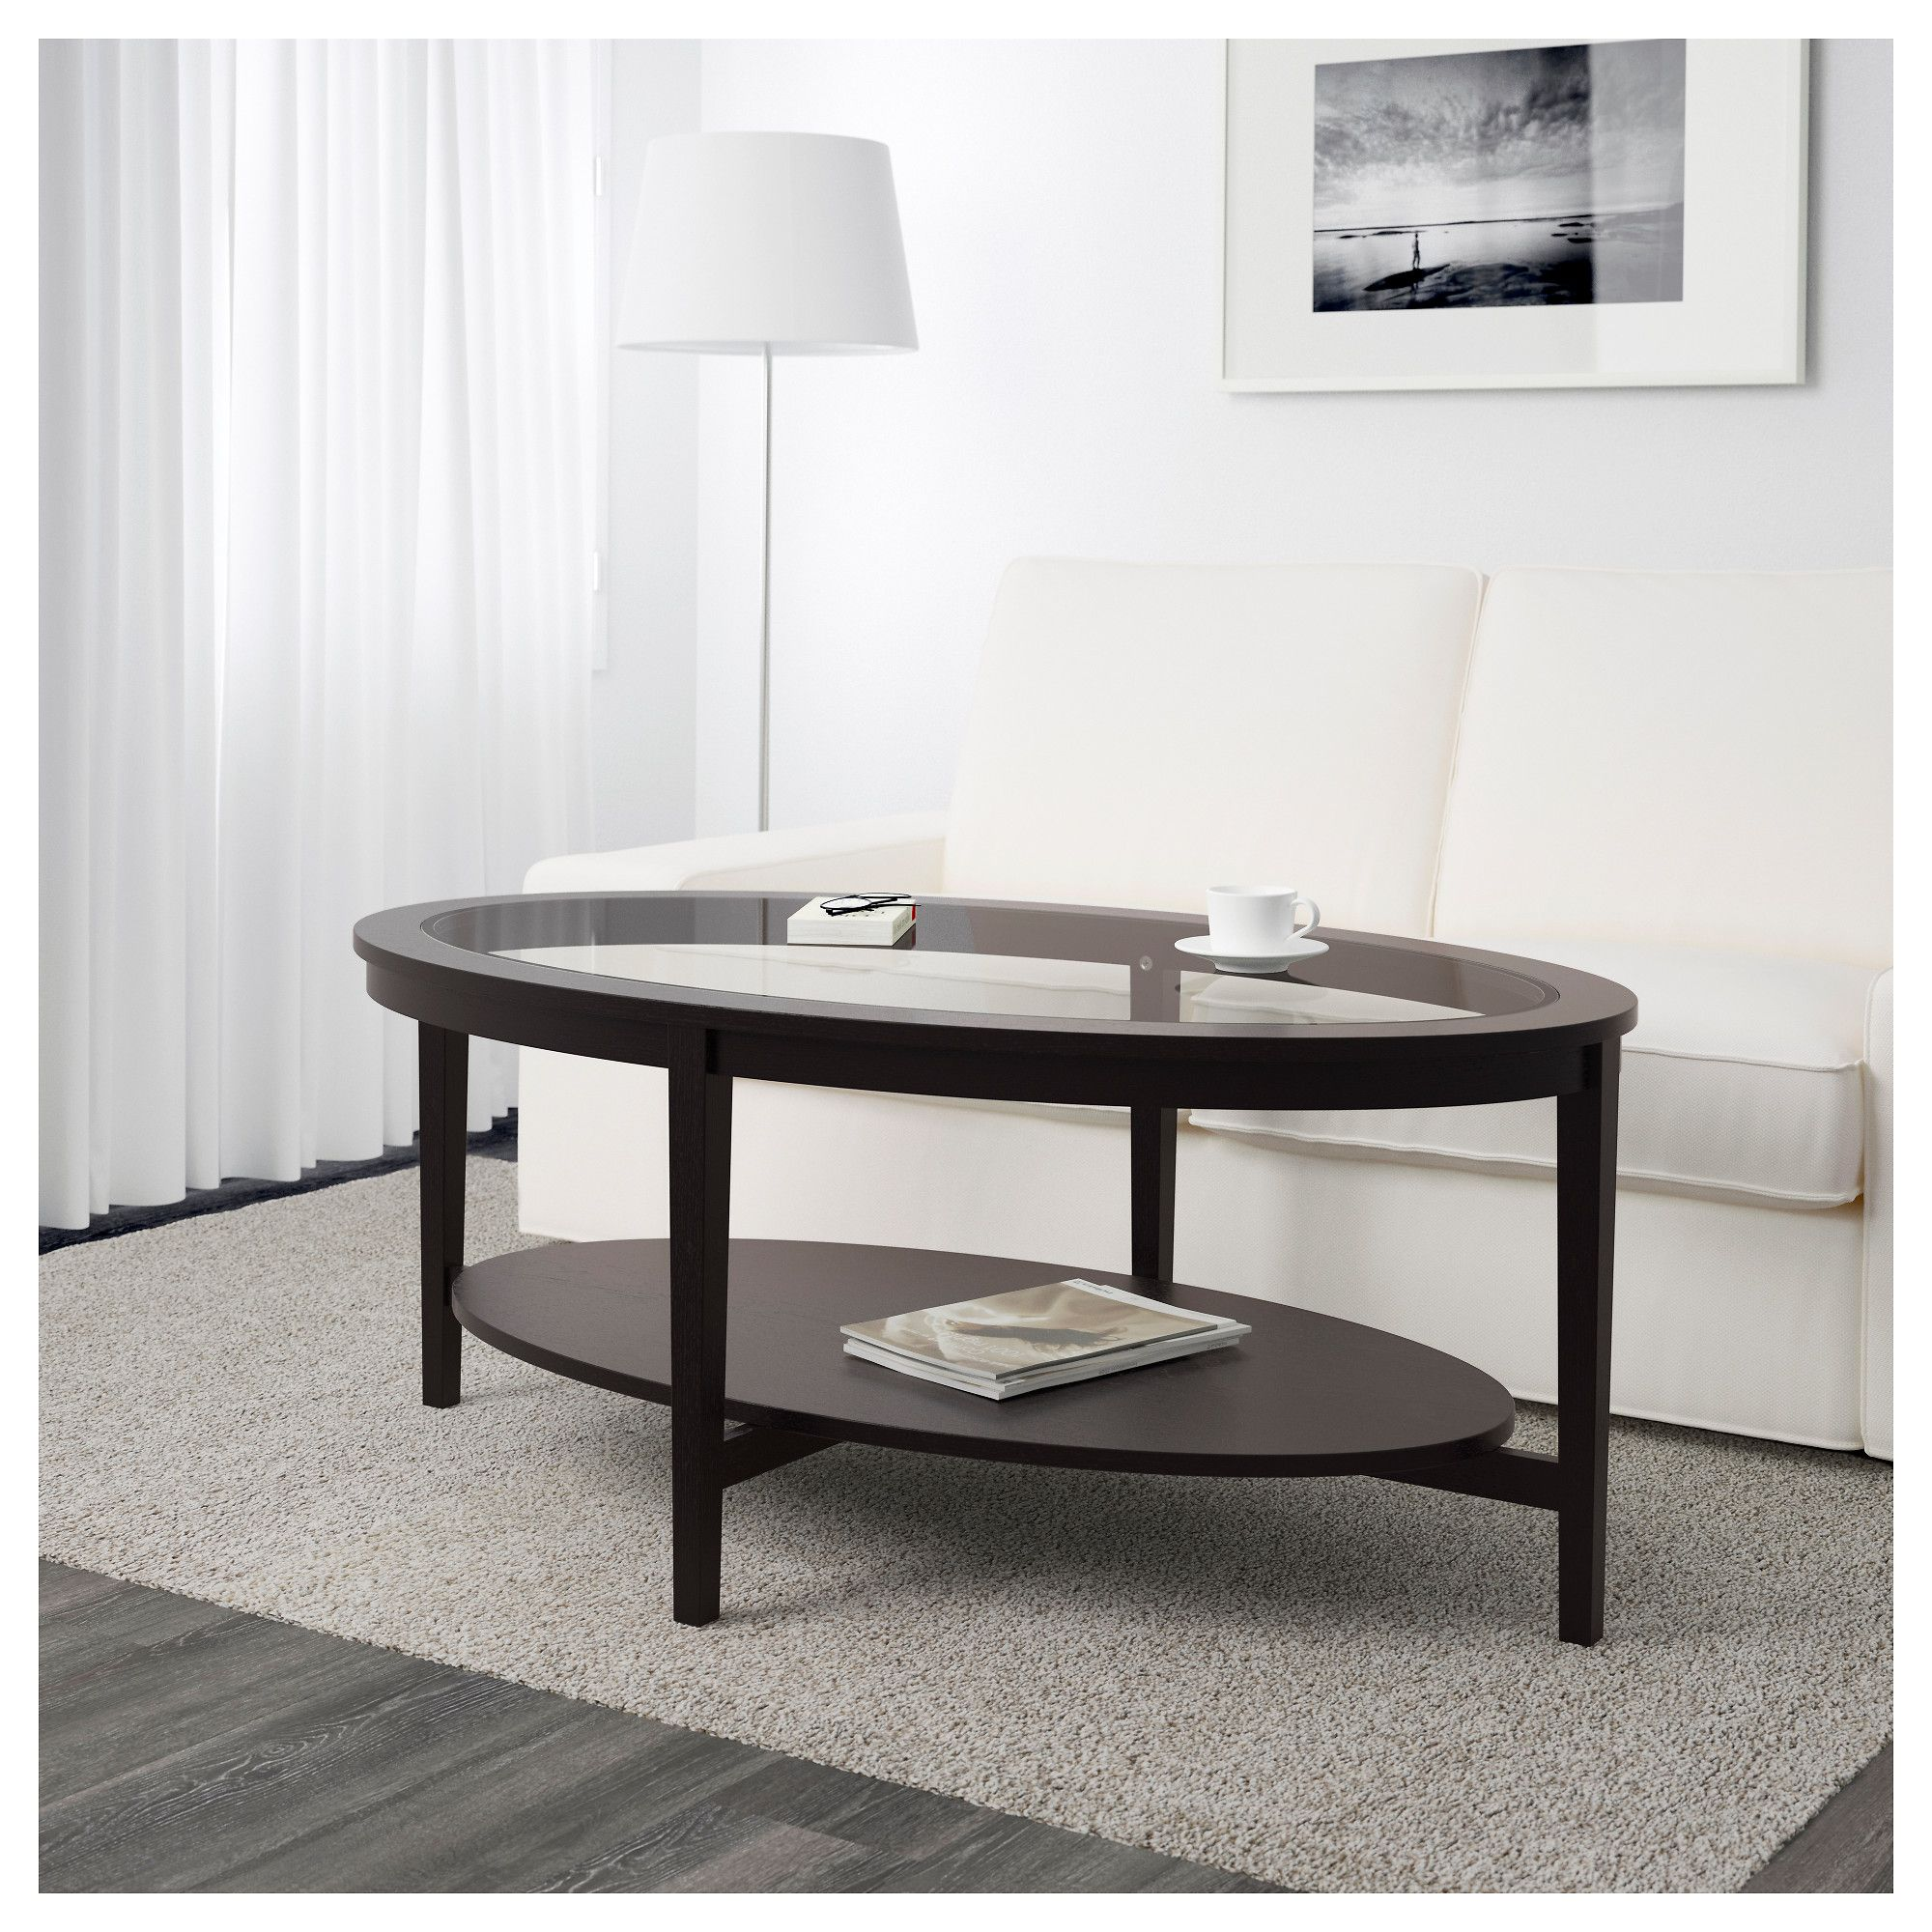 Ikea Malmsta Couchtisch Ikea Malmsta Coffee Table Black Brown In 2019 Products Ikea